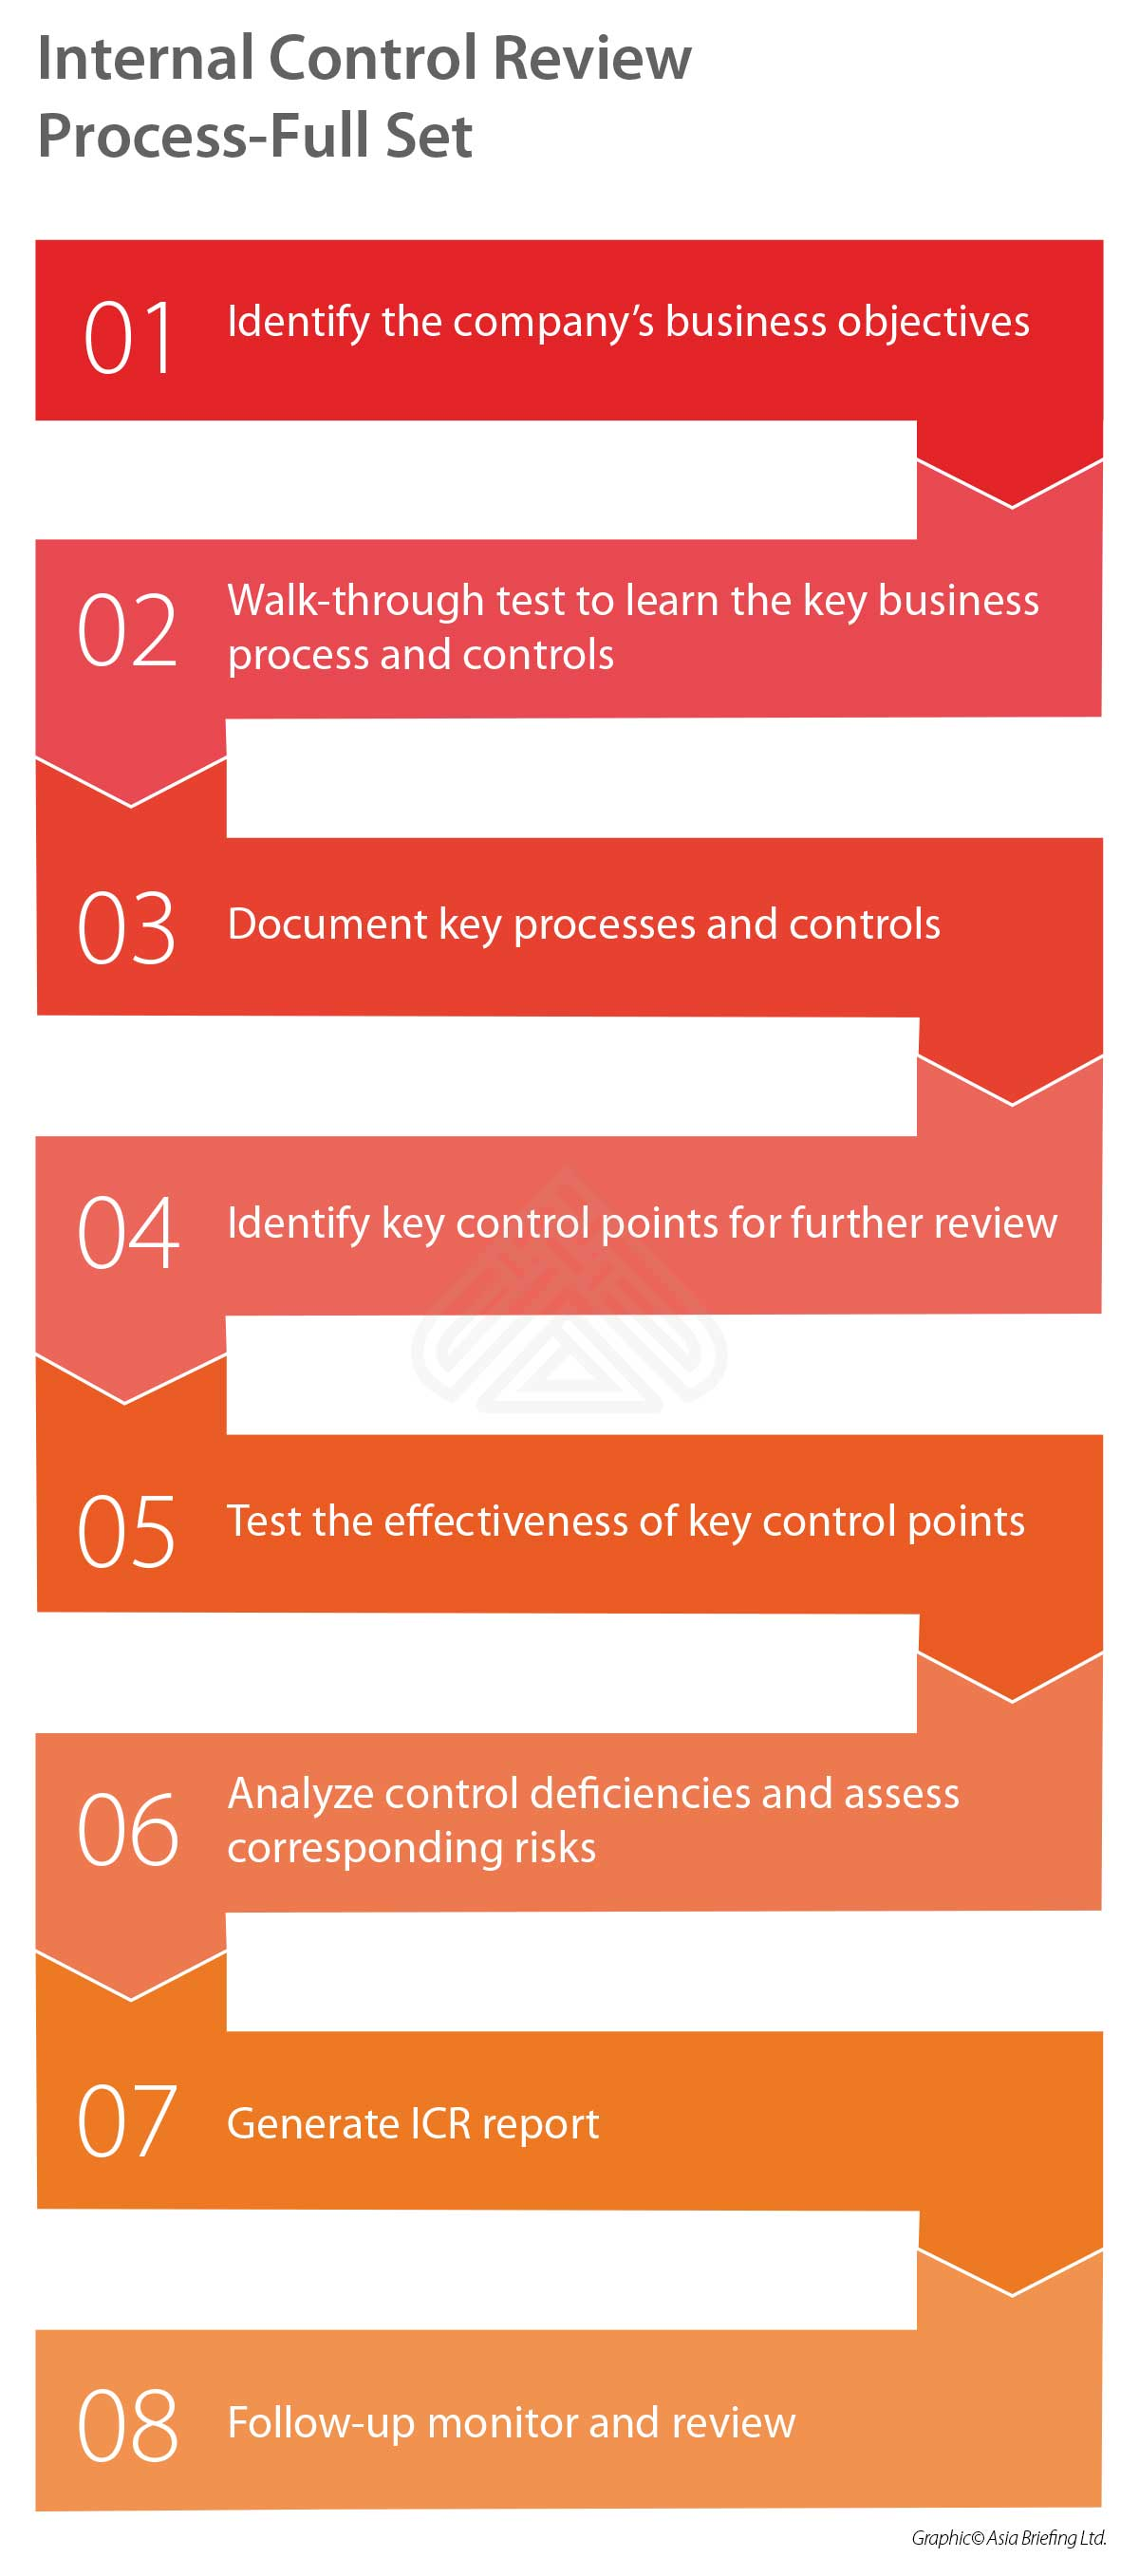 Internal Control Review Process - China